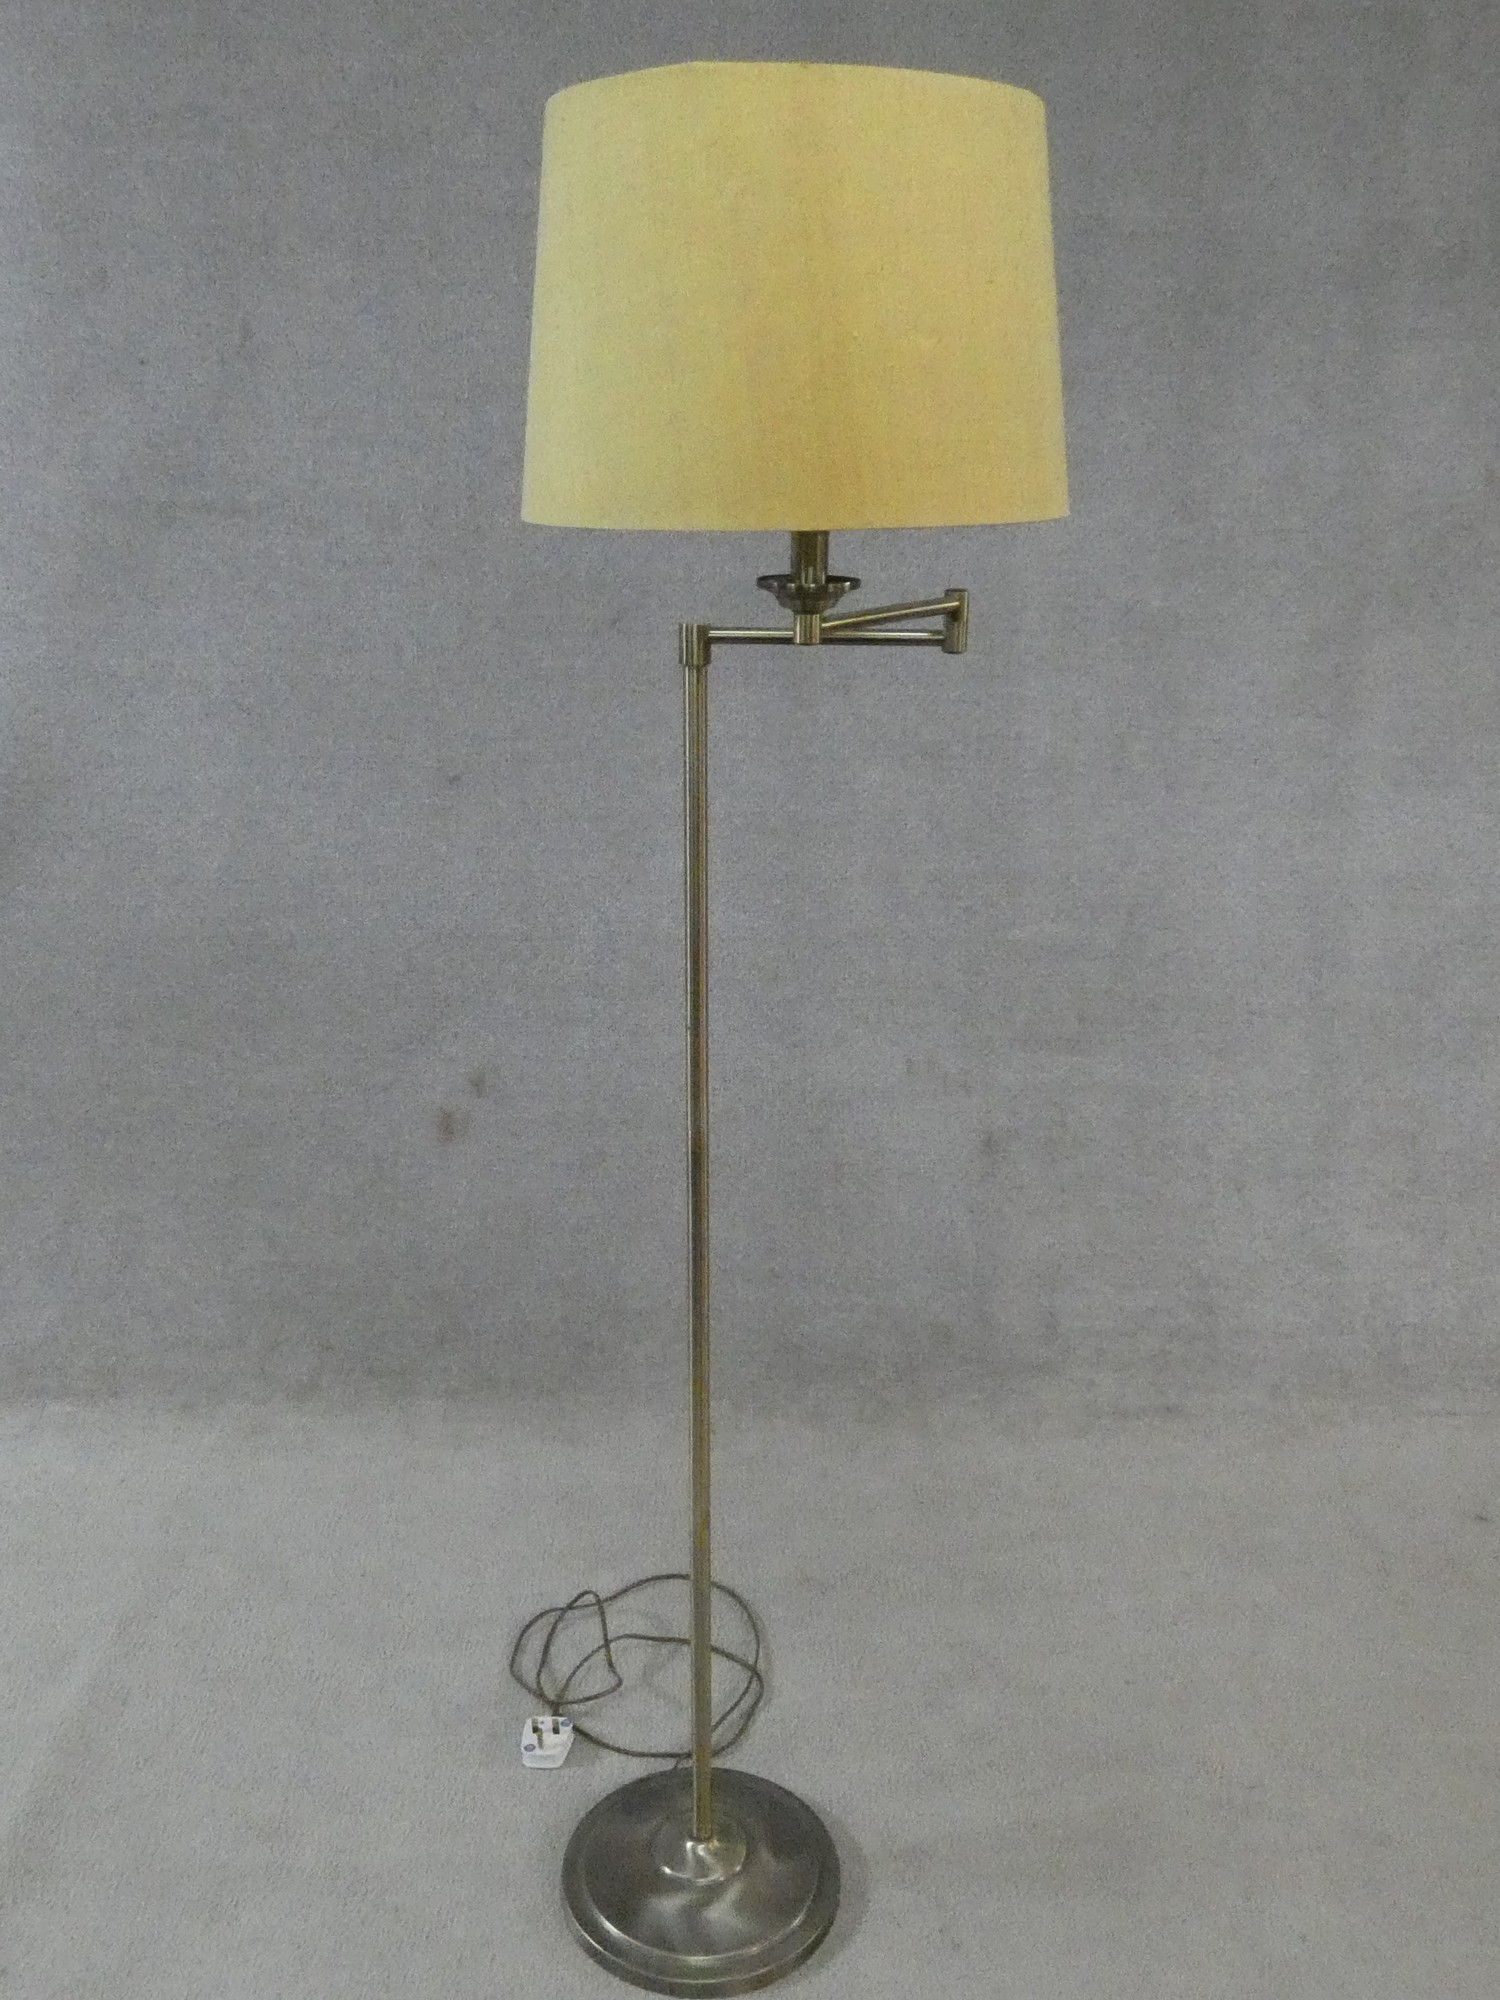 Two brass standard lamps with articulated actions and a chrome adjustable standard lamp. H.162cm - Image 12 of 16